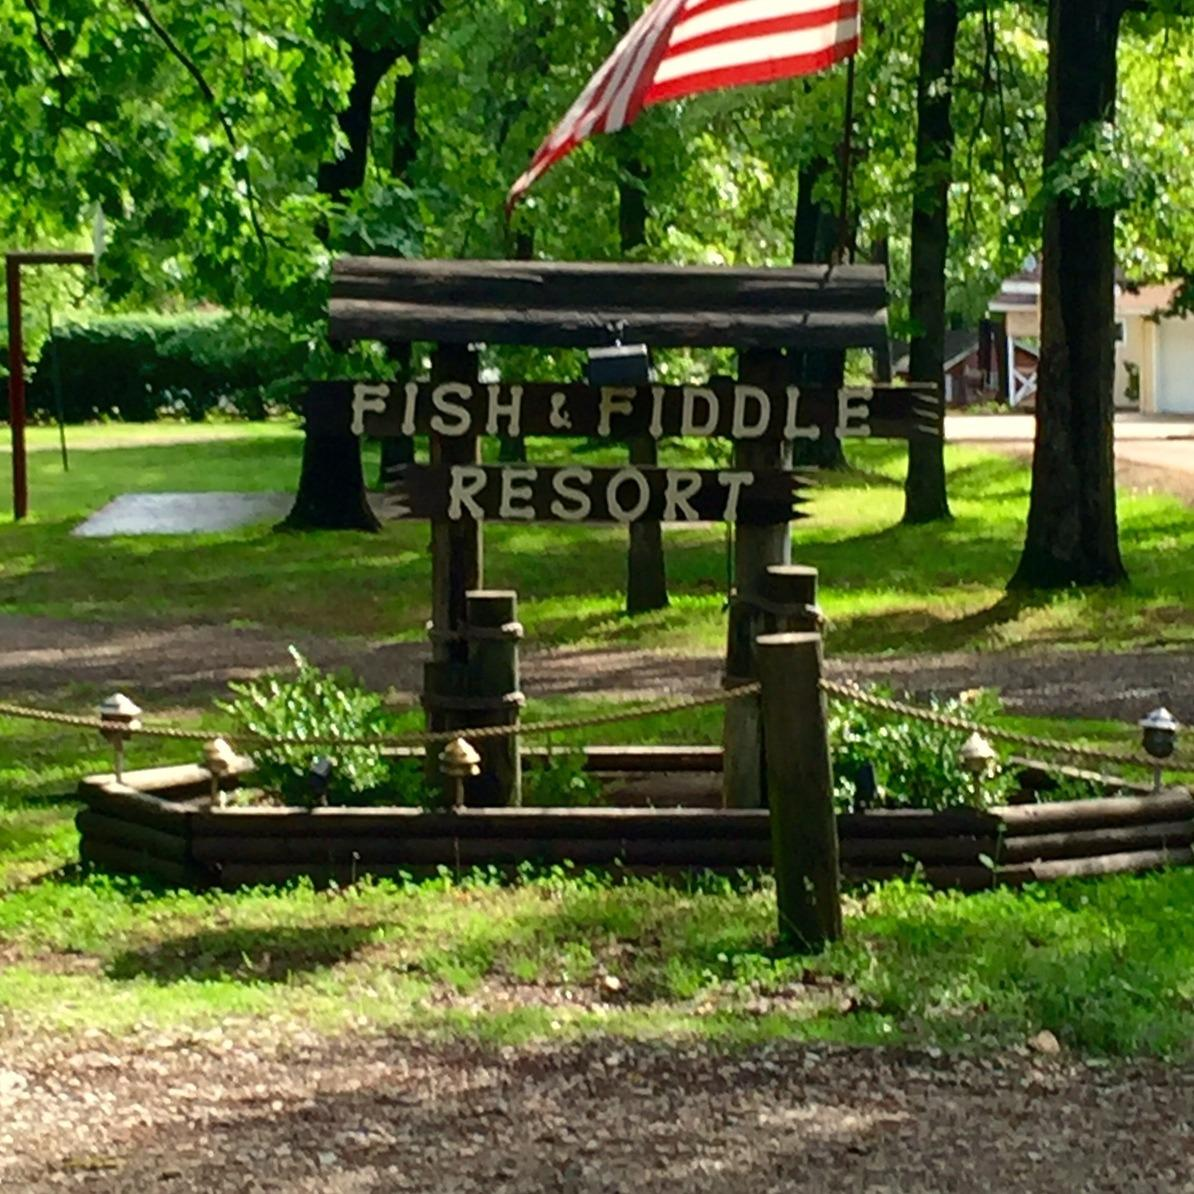 Fish and Fiddle Resort